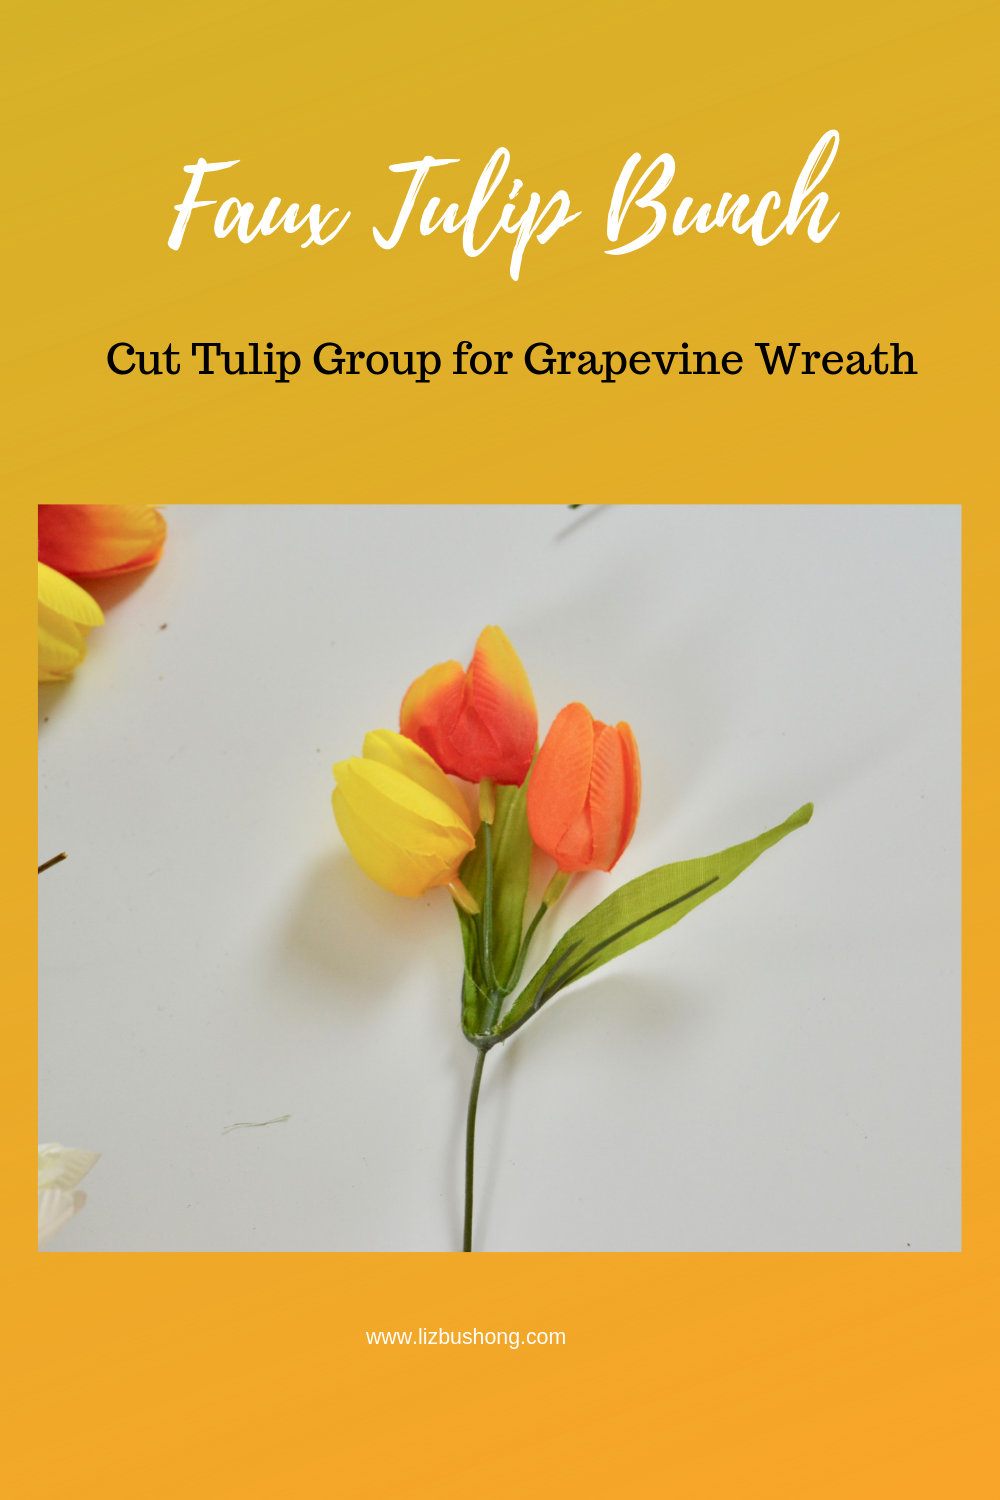 Faux Tulip Group Grapevine Wreath lizbushong.com